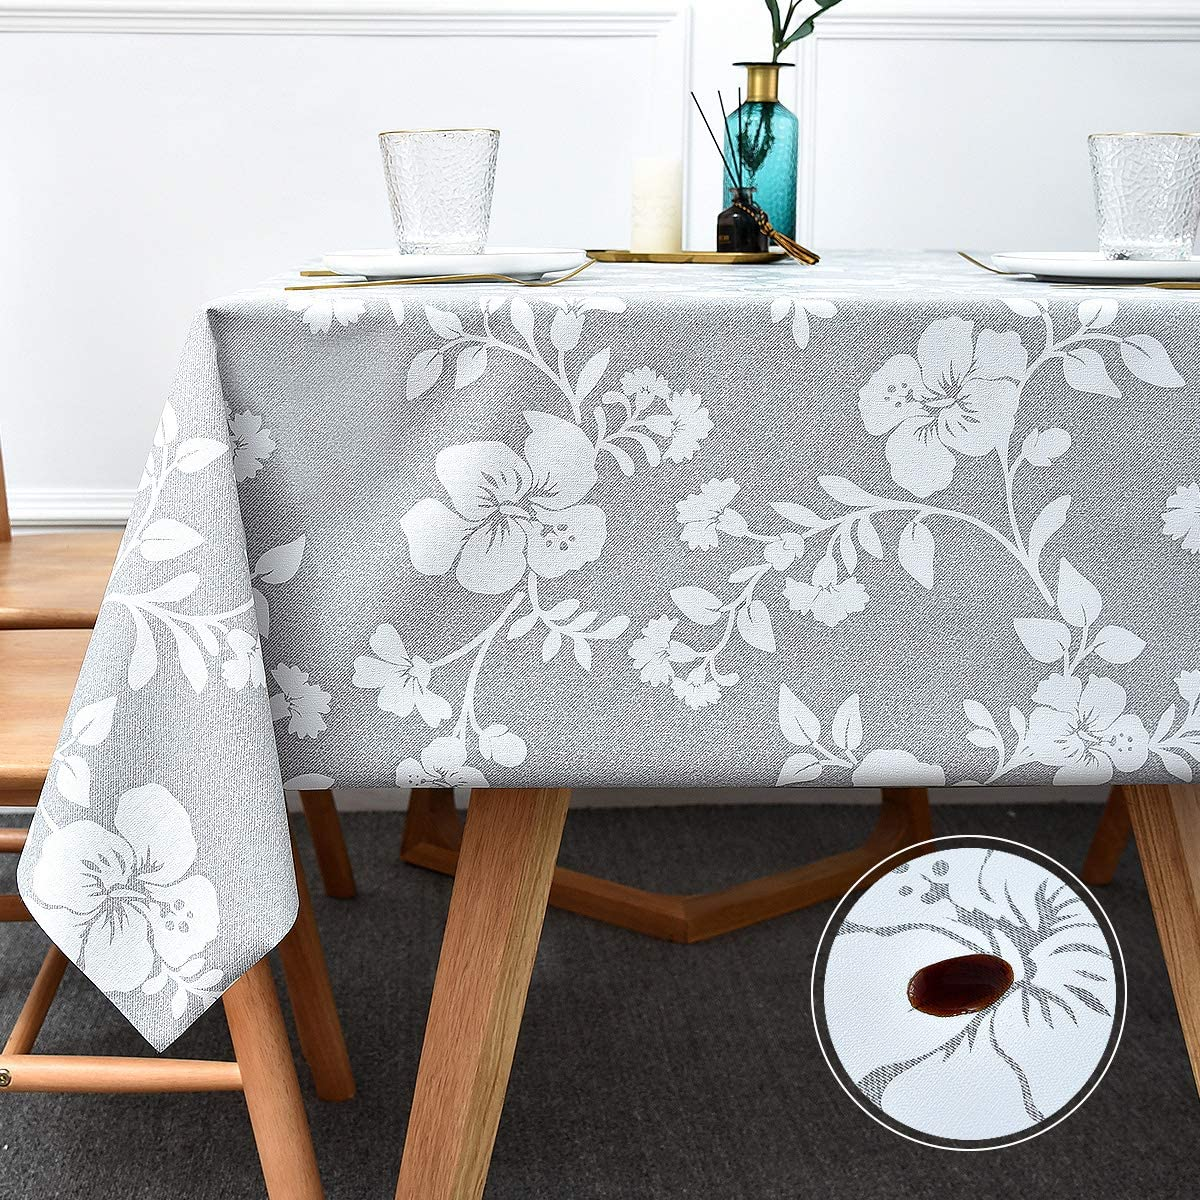 Gold Leaves Floral Metallic Wipe Clean PVC Tablecloth Vinyl Dining Oilcloth